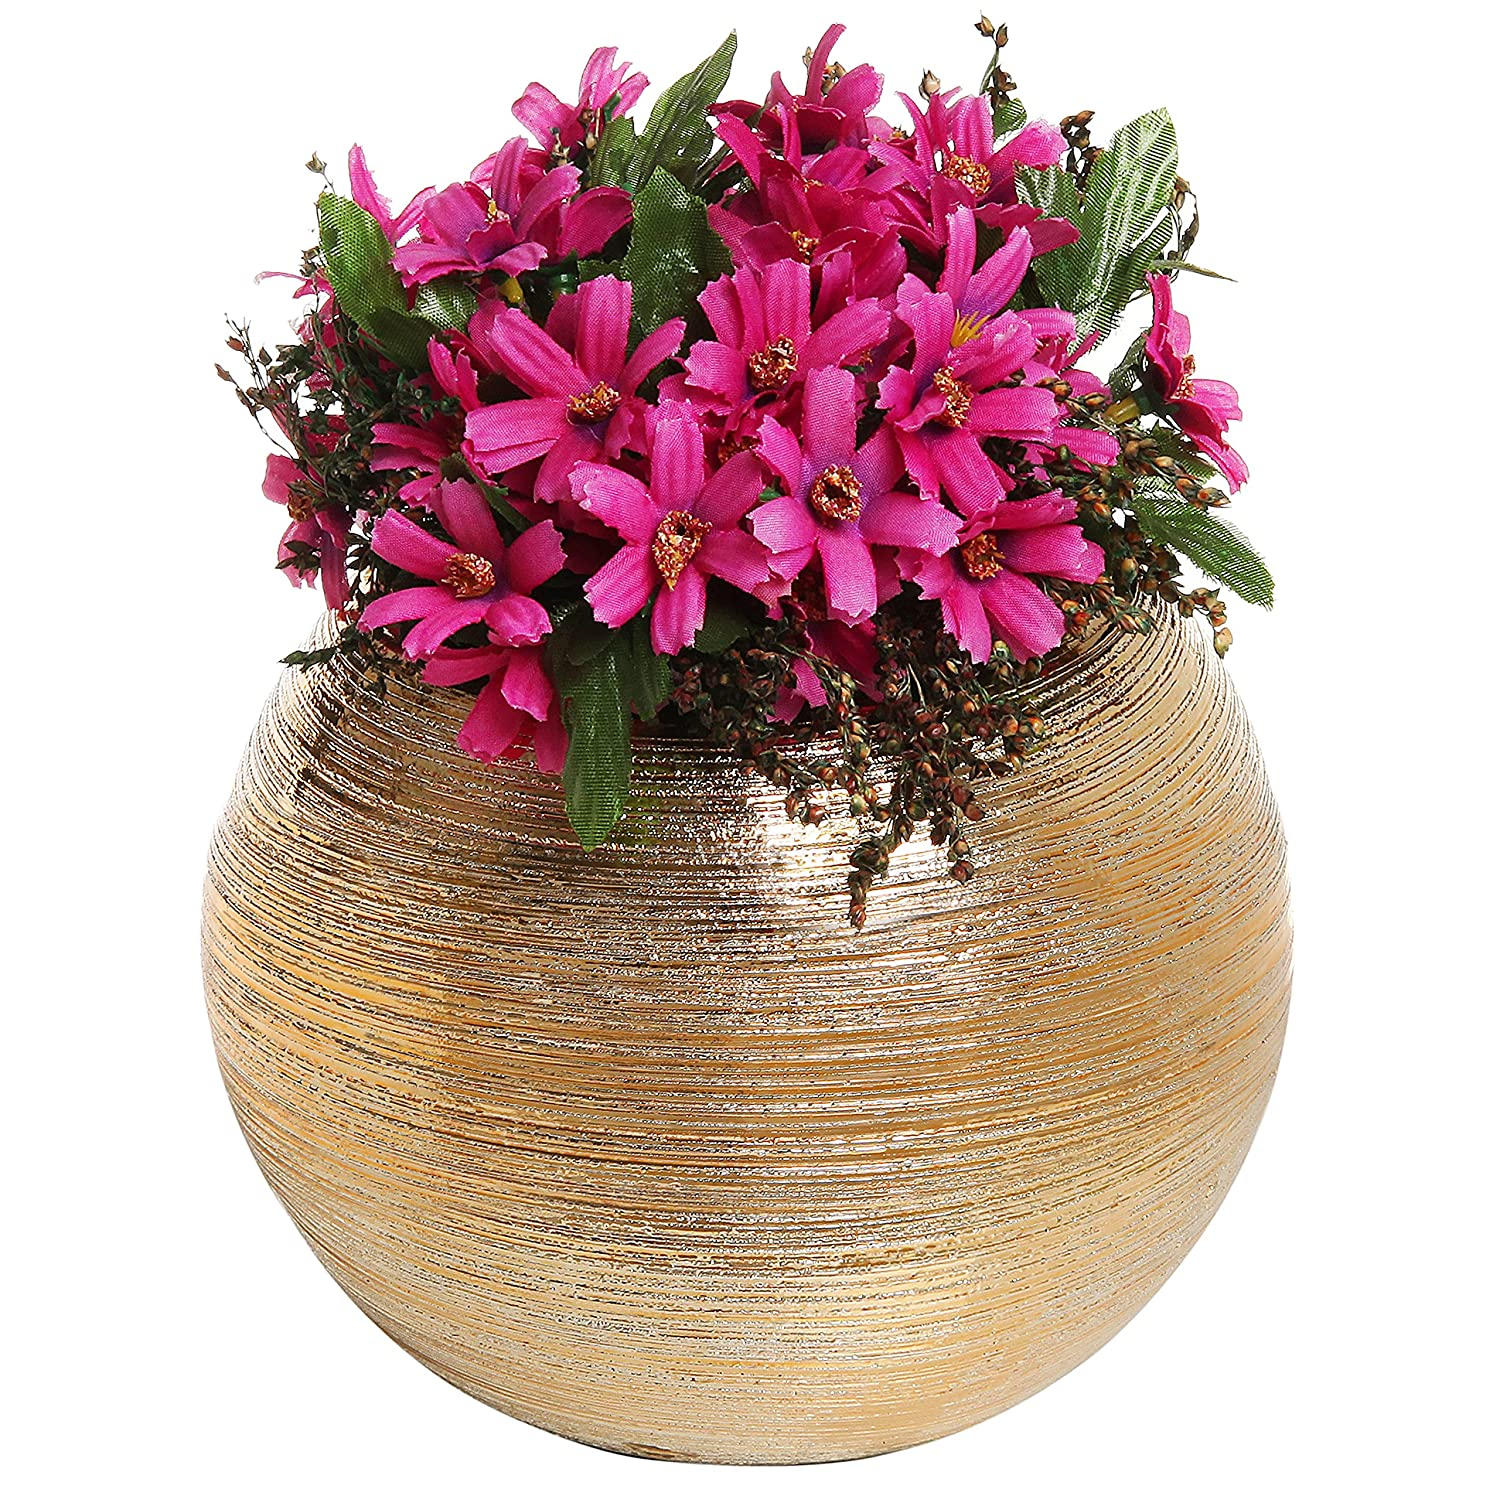 Amazon 675 inch round modern metallic gold tone ridged amazon 675 inch round modern metallic gold tone ridged ceramic plant flower planter pot decorative bowl vase home kitchen reviewsmspy